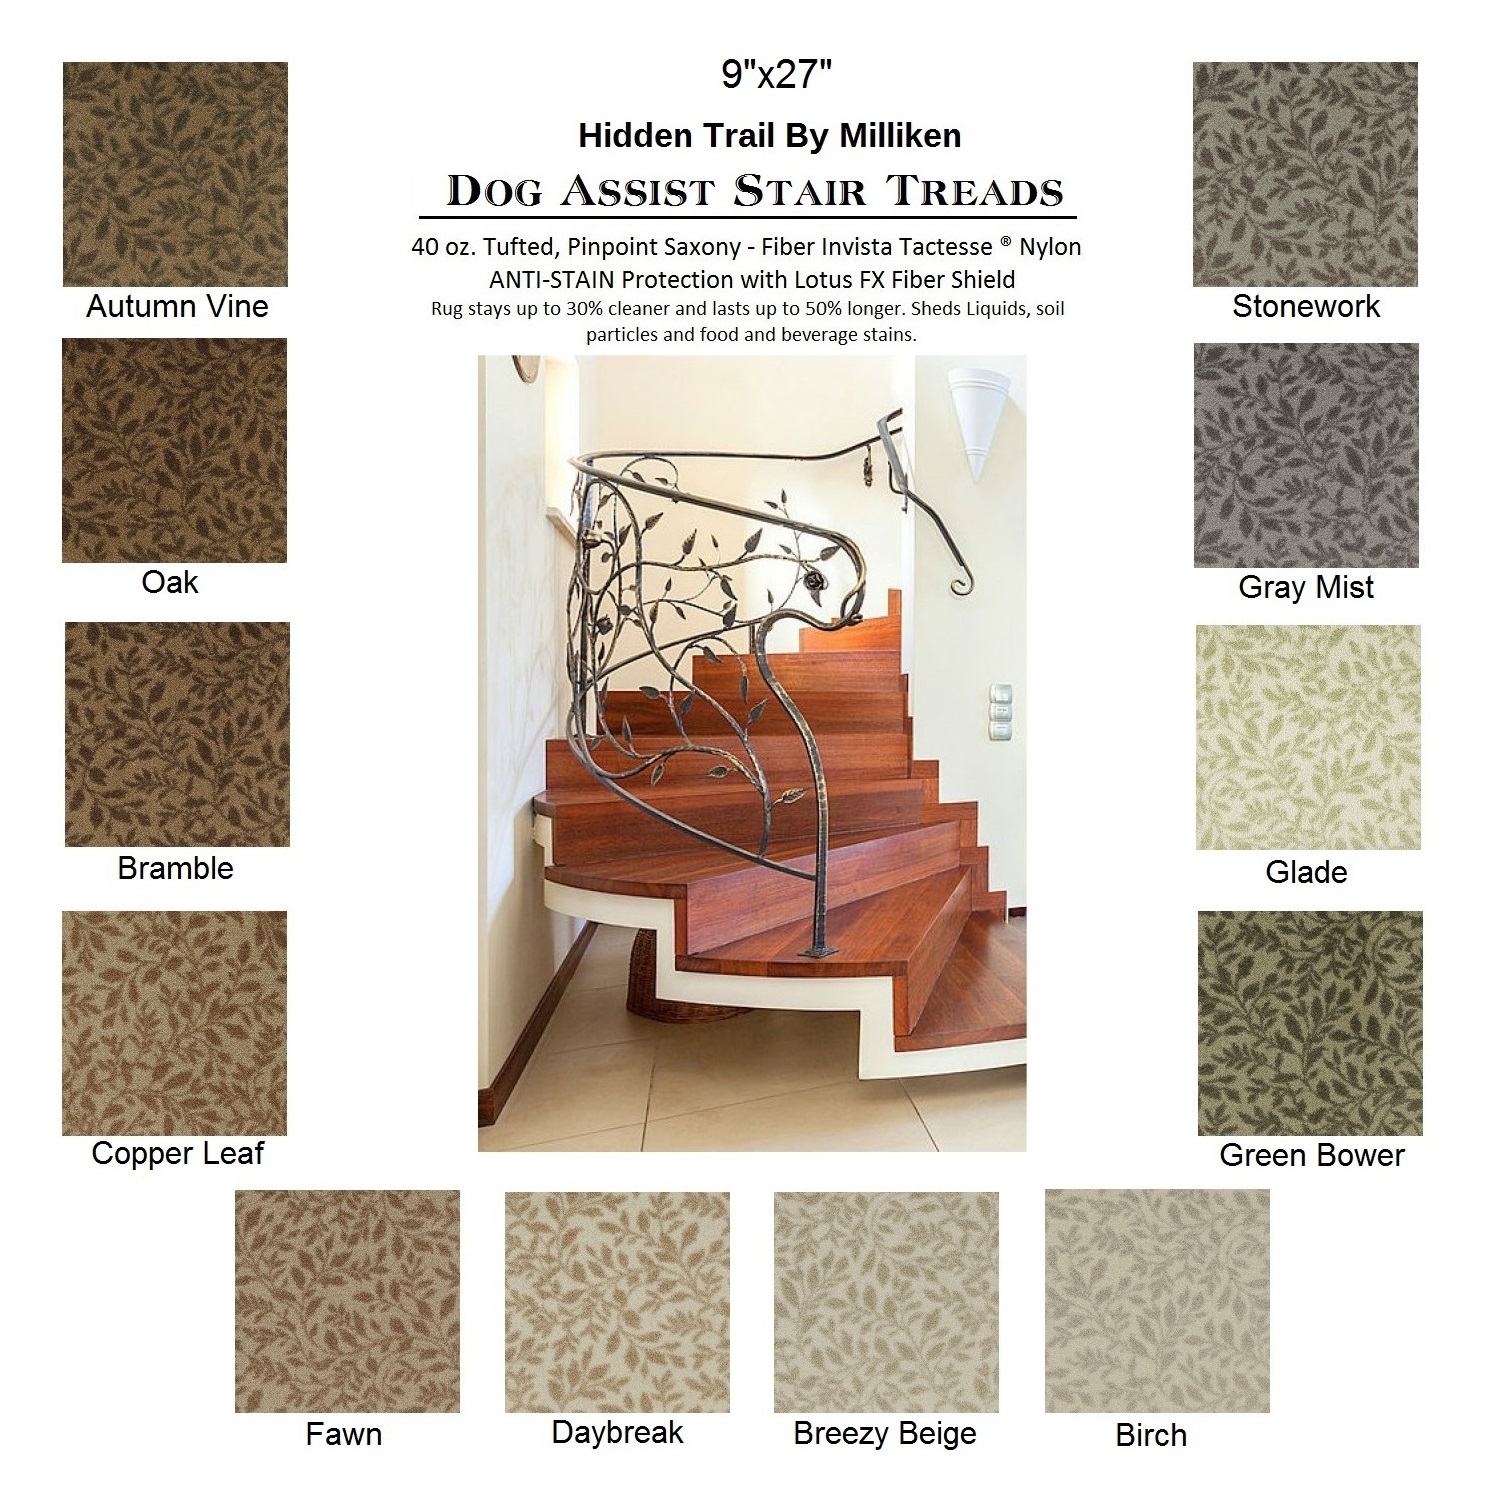 Trail Ii Dog Assist Carpet Stair Treads Regarding Carpet Stair Treads For Dogs (Image 15 of 15)